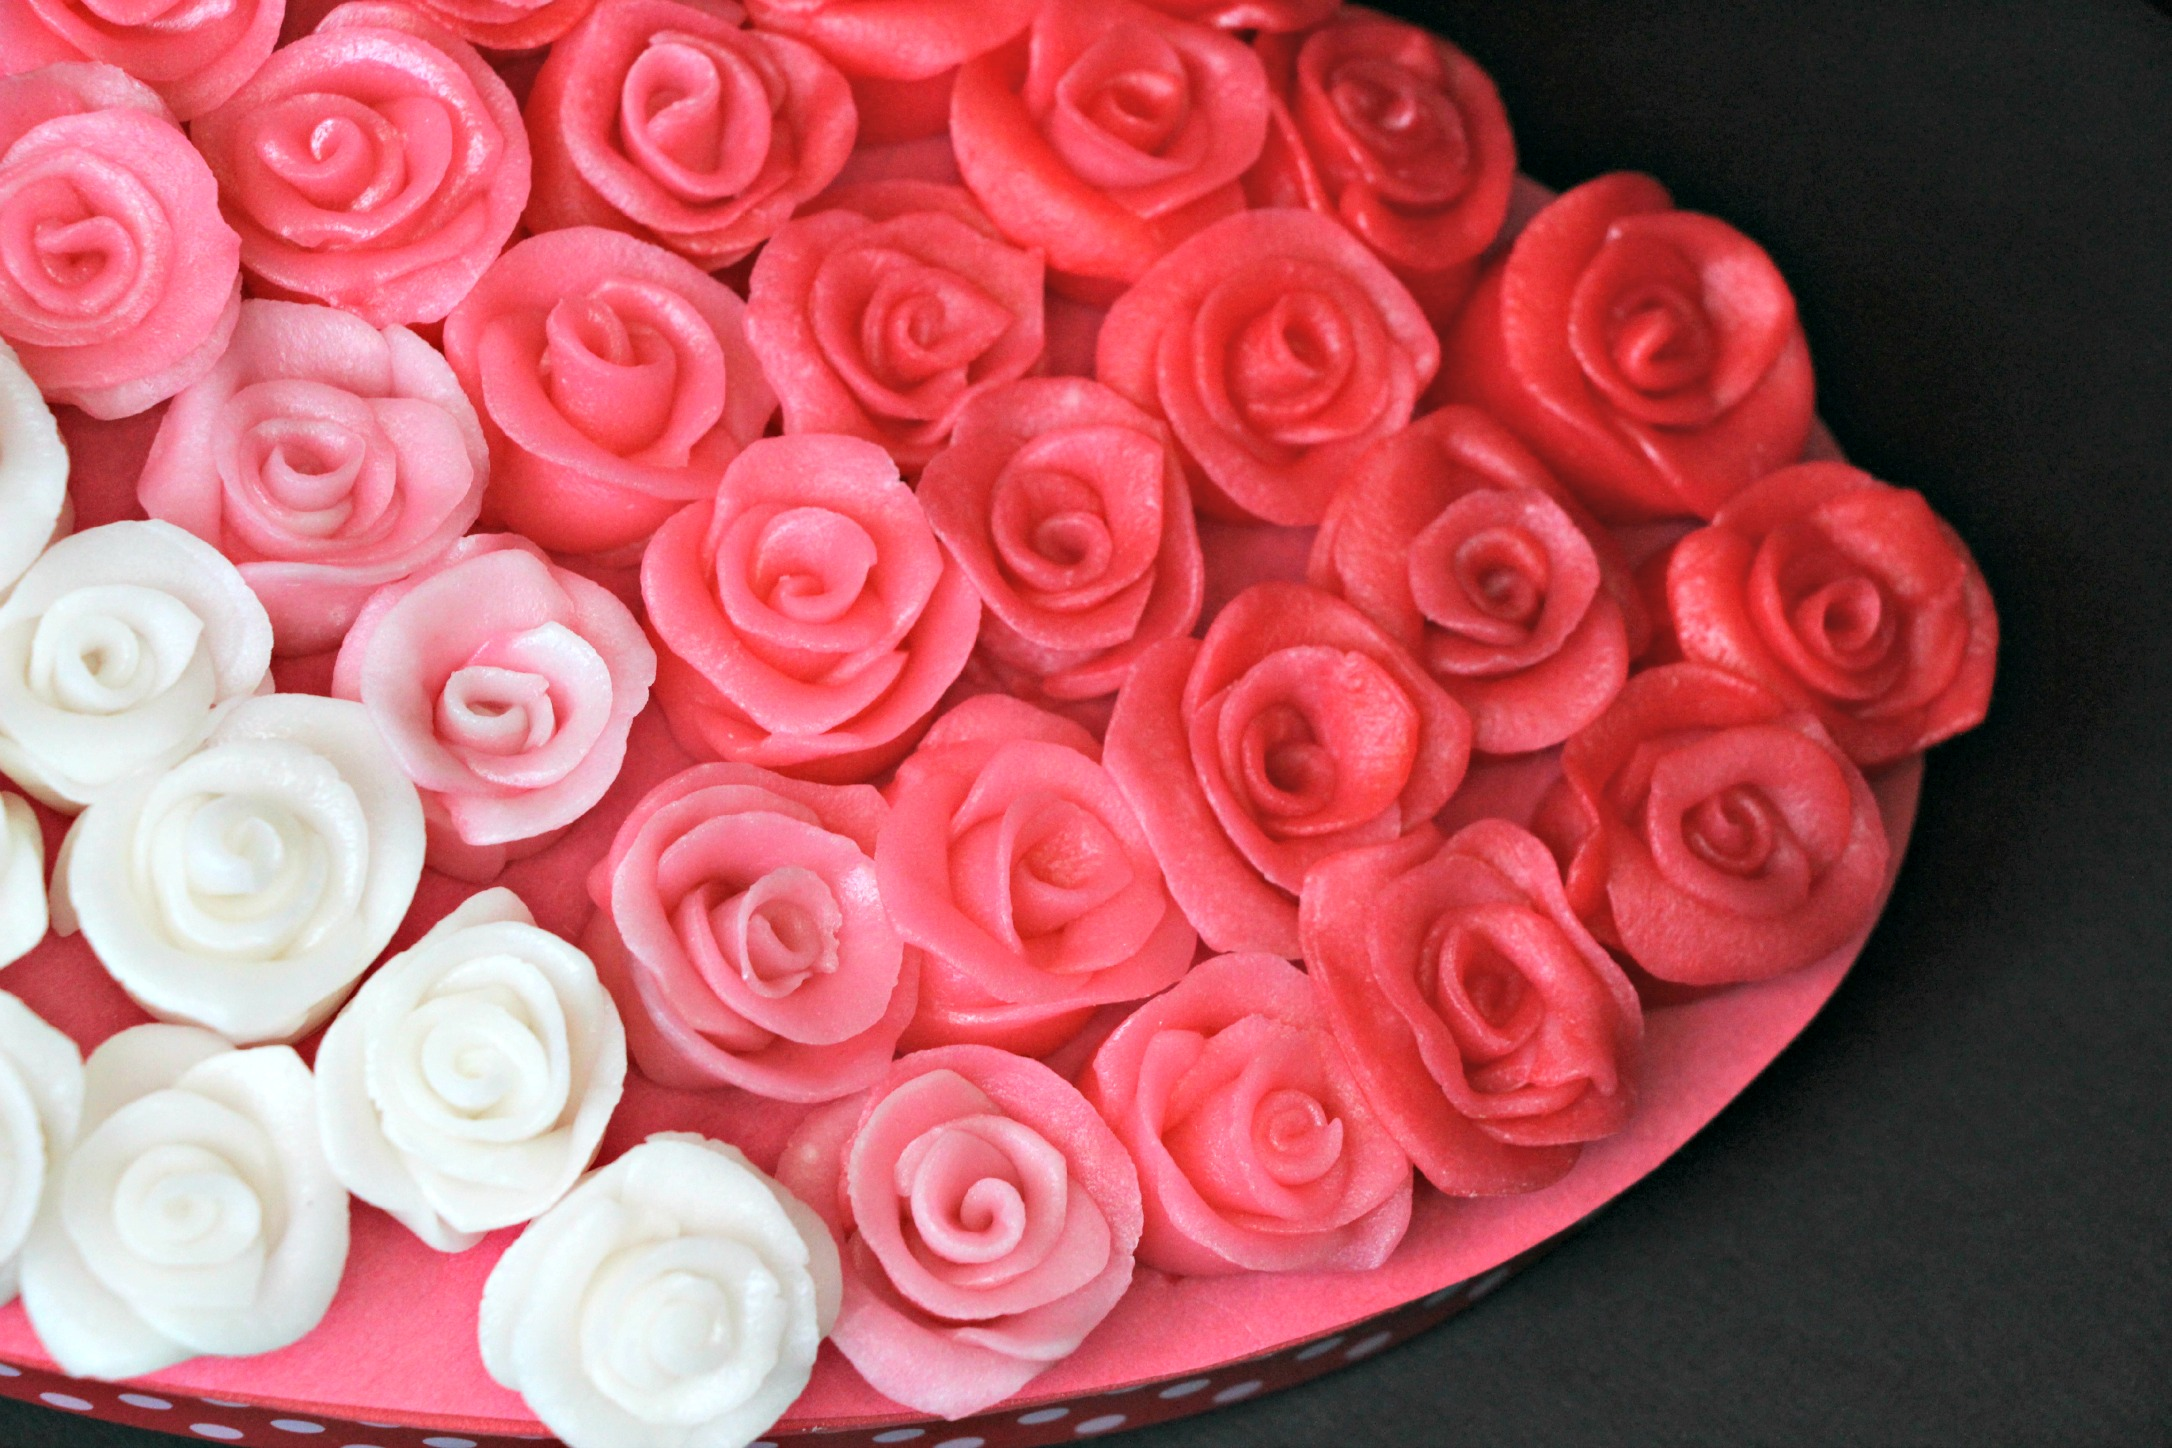 Ombre pink roses valentines box made from Airheads candy!